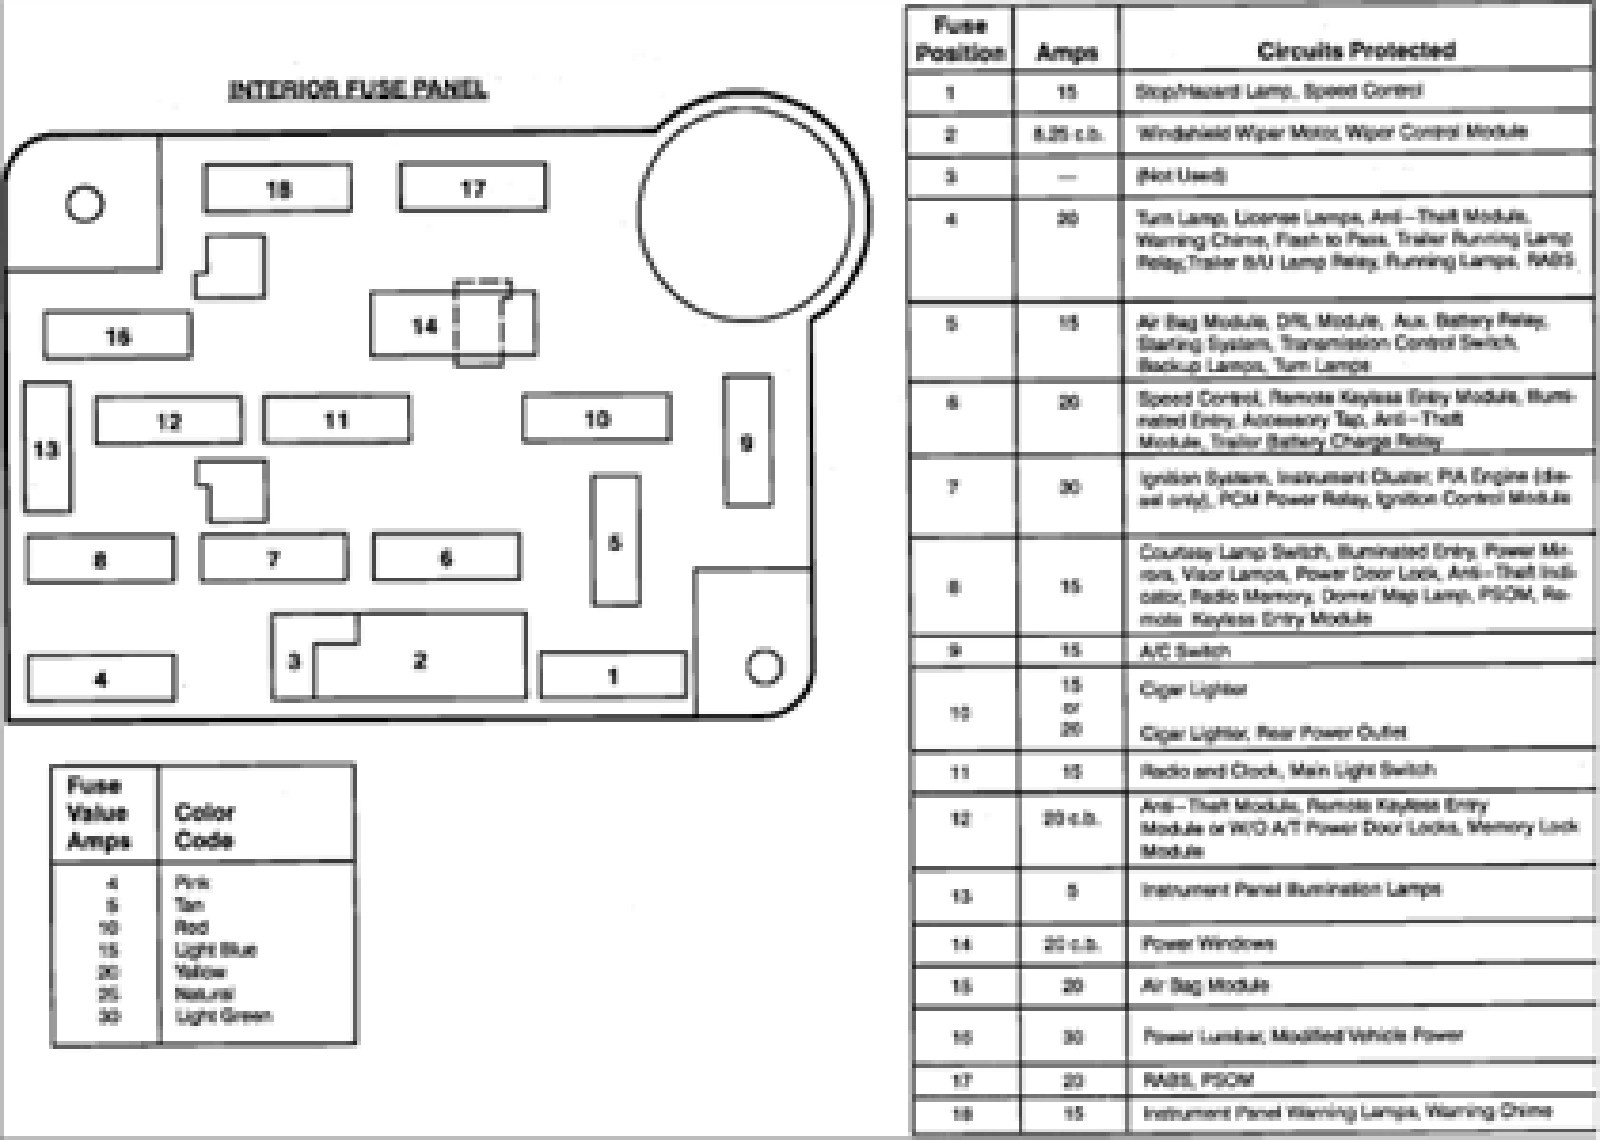 hight resolution of 1997 ford e150 fuse diagram wiring diagram schematics 1997 e250 blower motor resistor 1997 e250 fuse